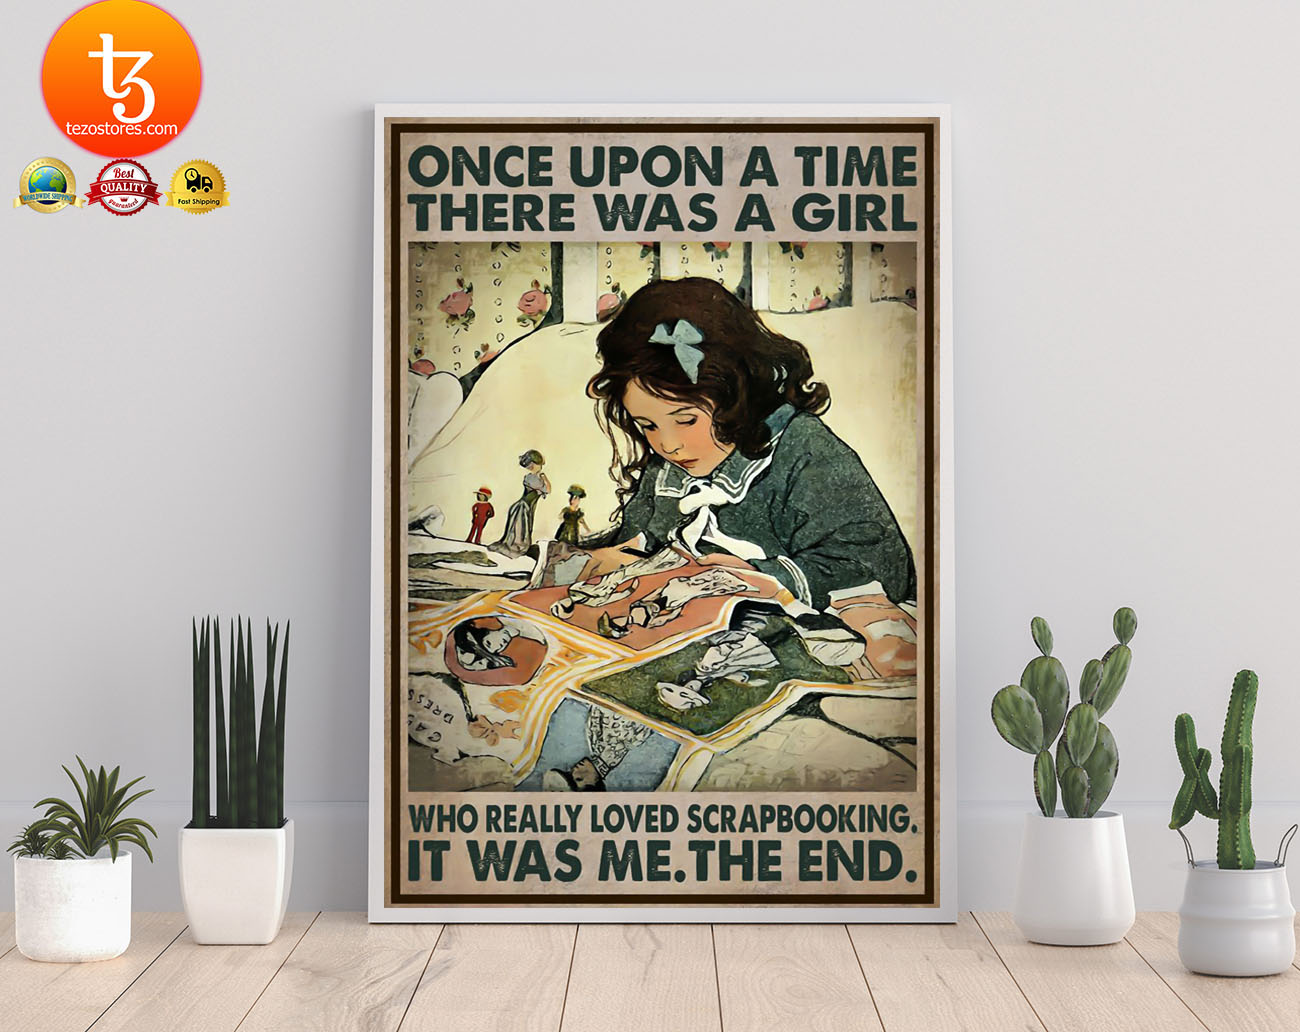 Once upon a time there was a girl who really loved scrapbooking poster 22